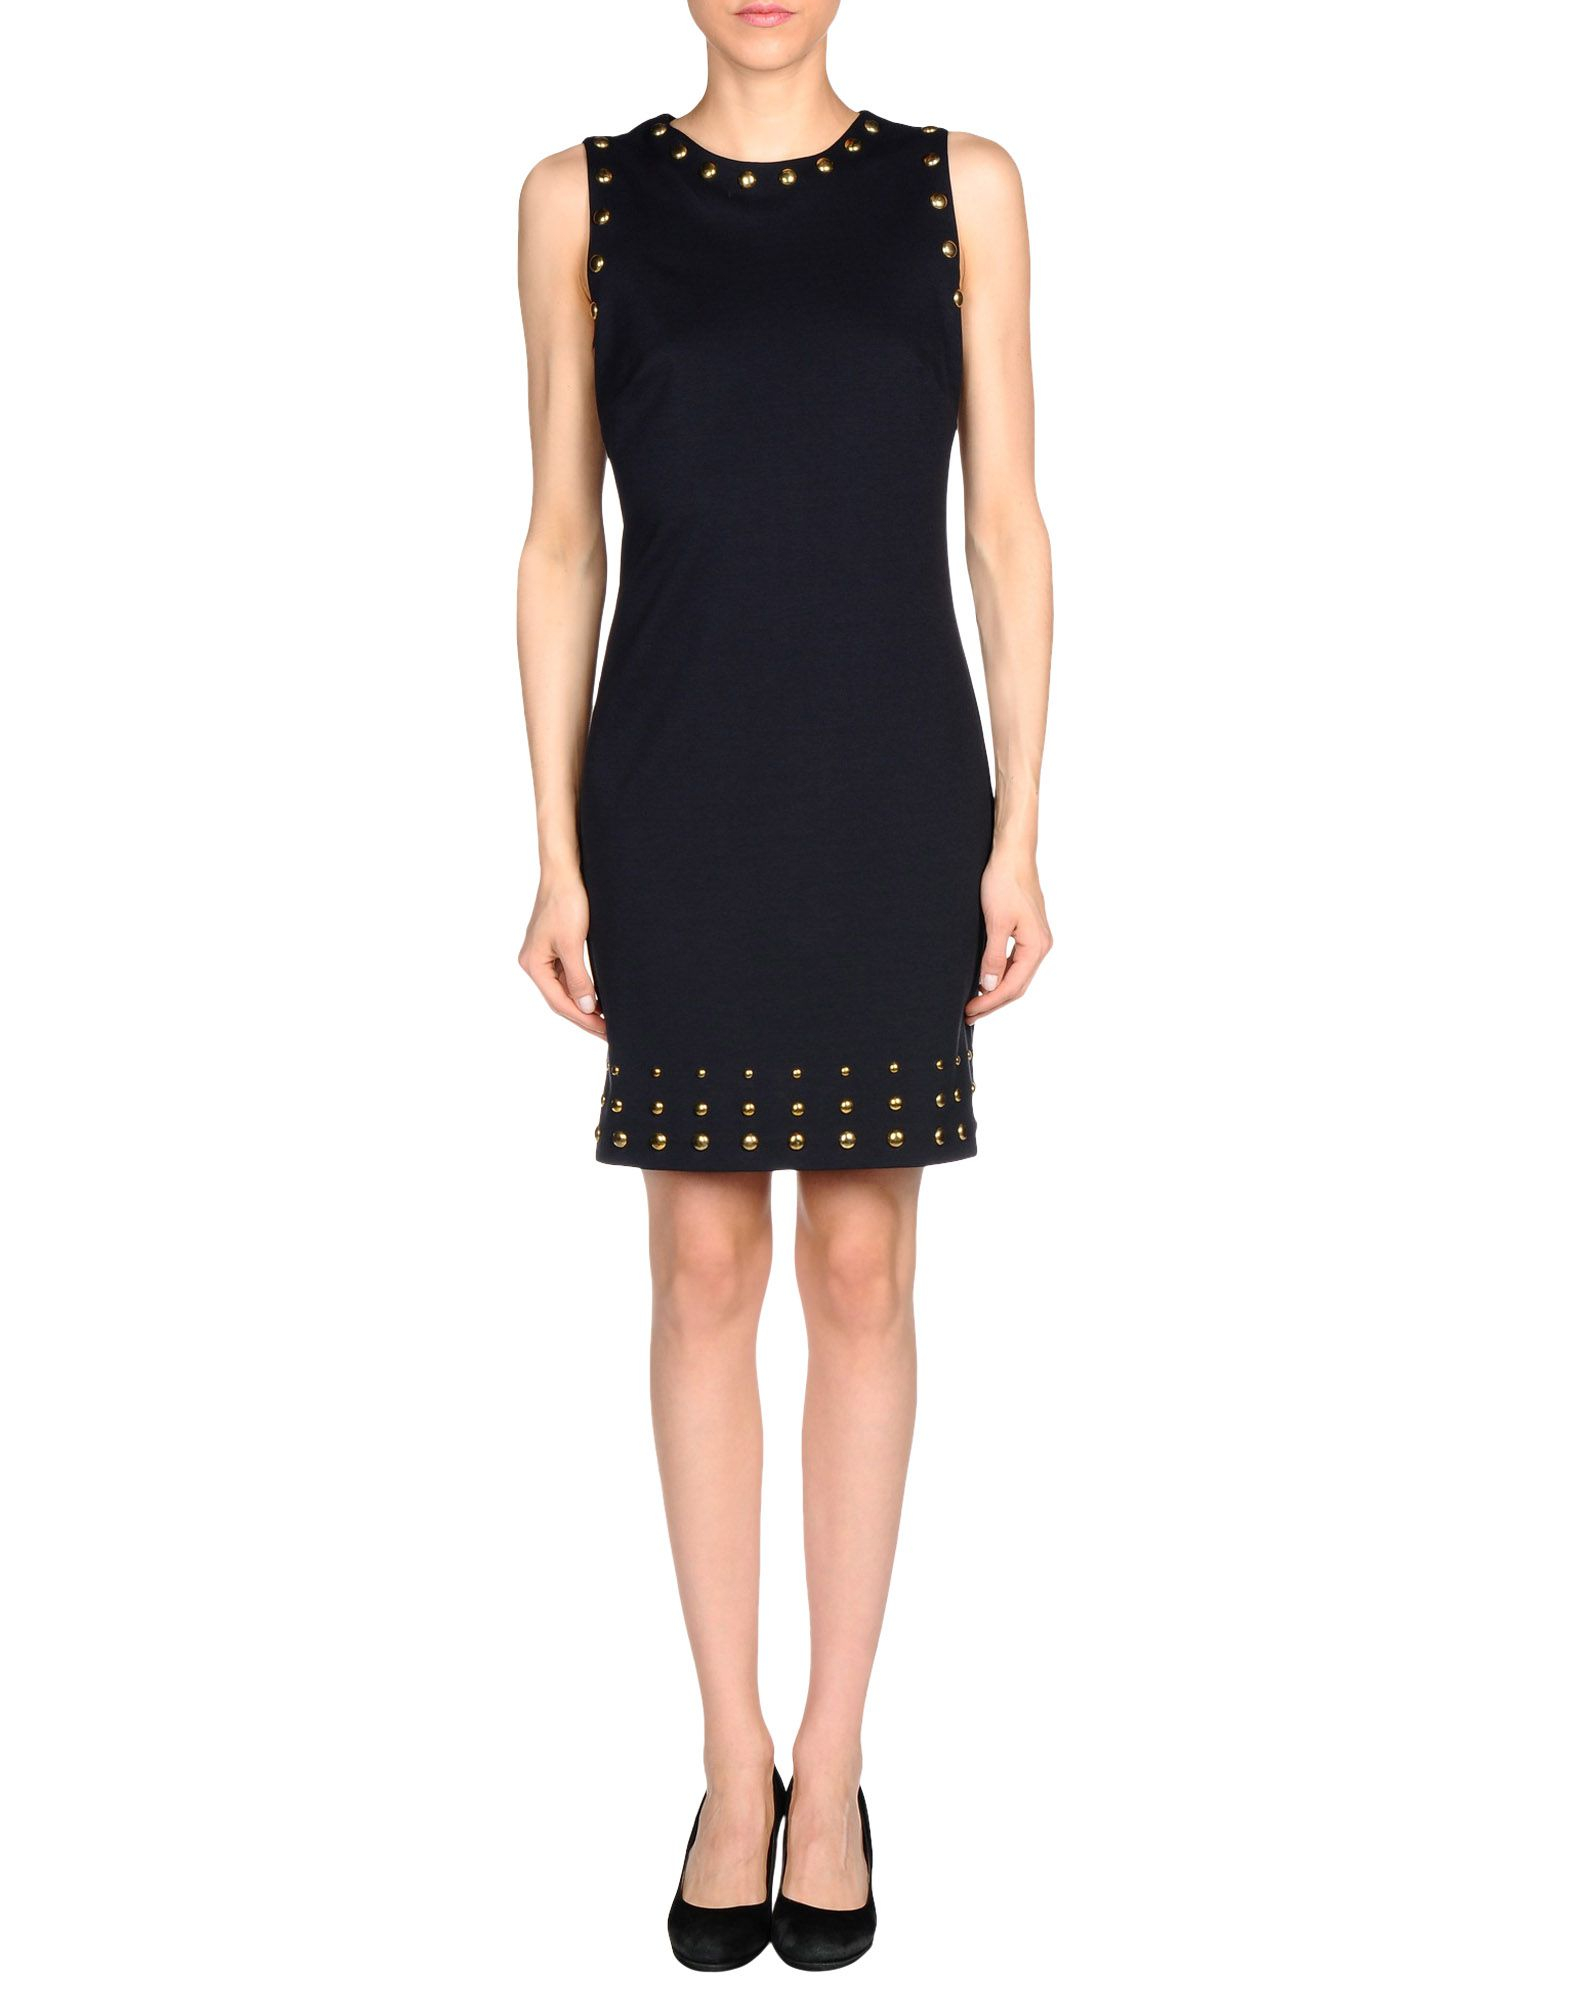 Fantastic Michael Michael Kors Michael Kors Womenu0026#39;s Dress In Black - Save 50% | Lyst